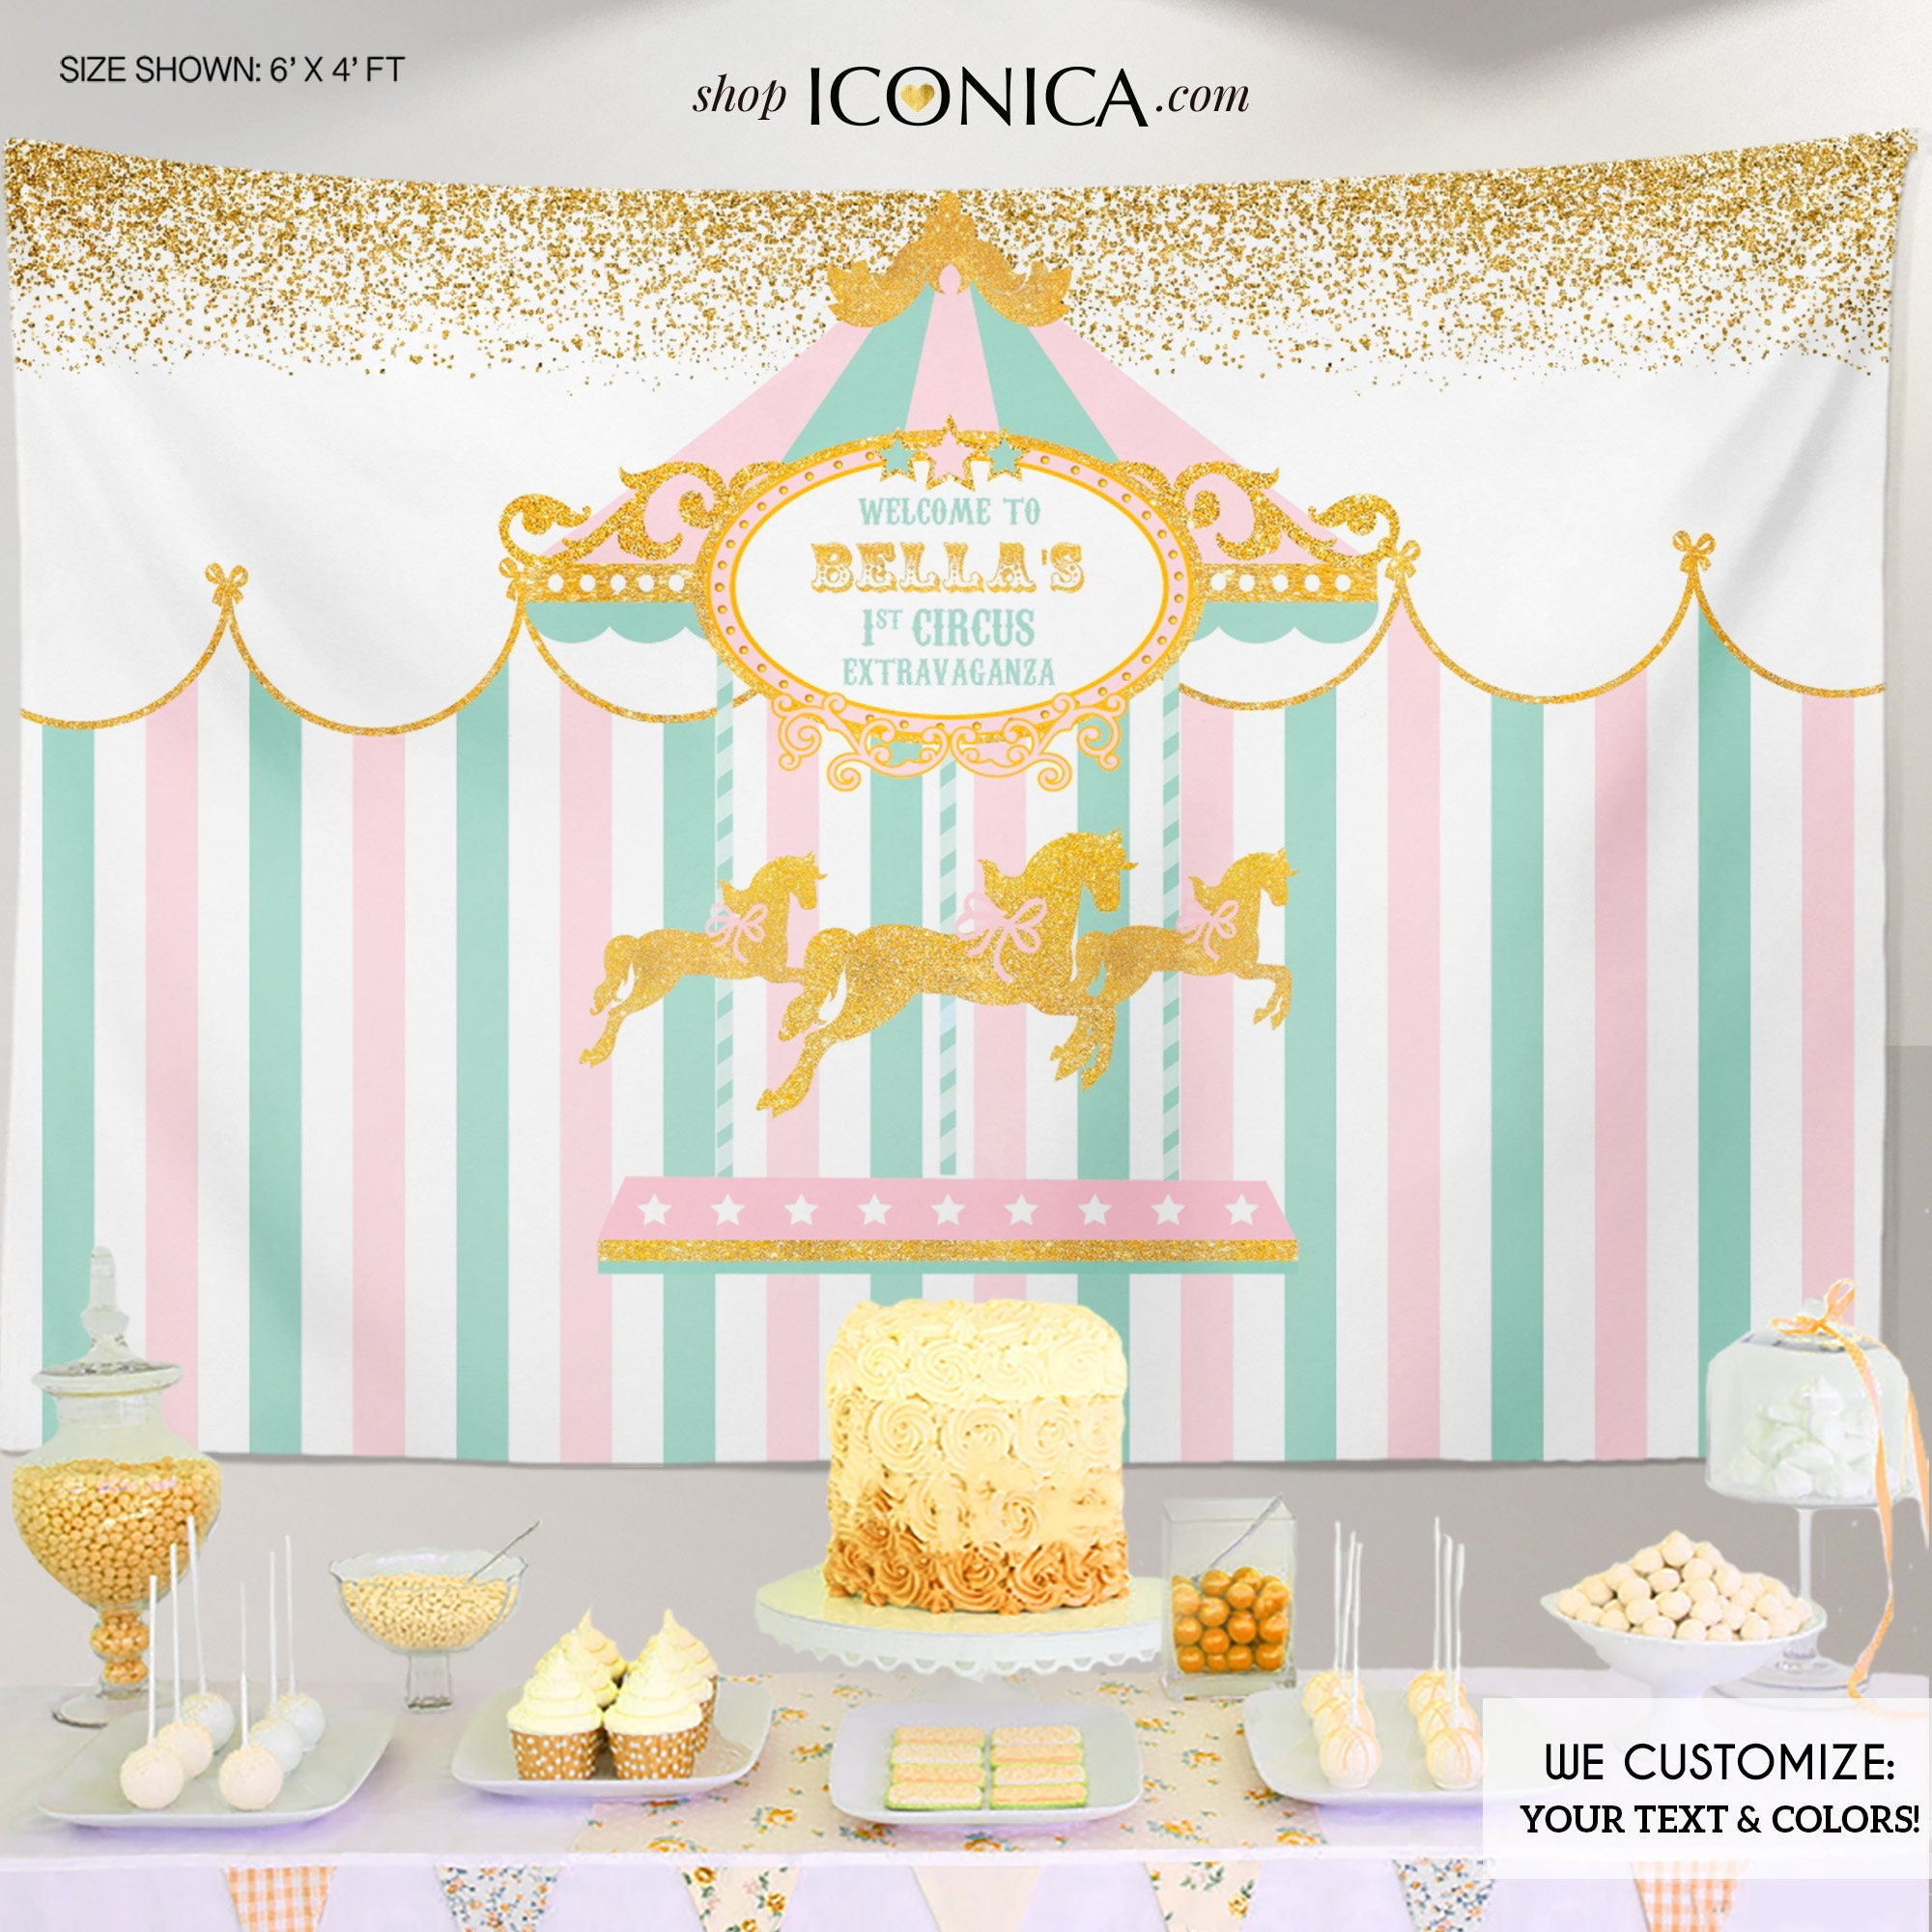 Carousel First Birthday Backdrop,Girls Circus Party Decor